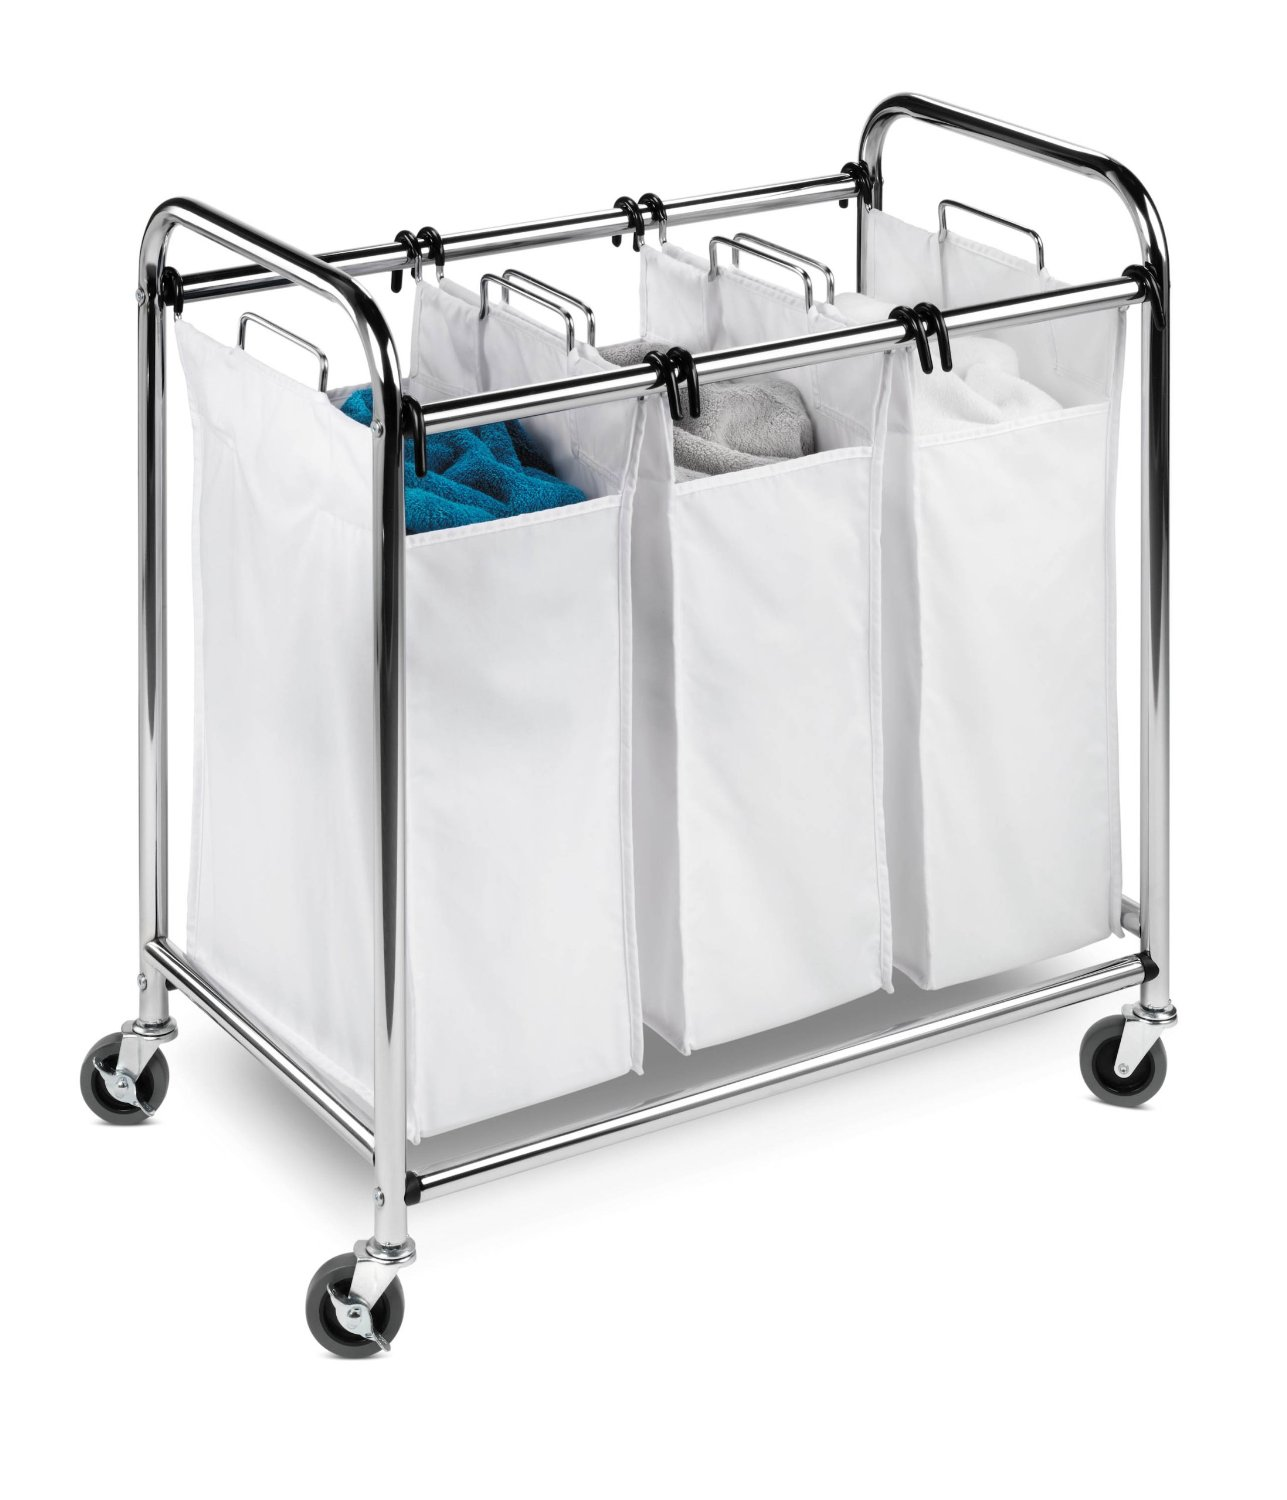 White Section Of Laundry Baskets With Wheels